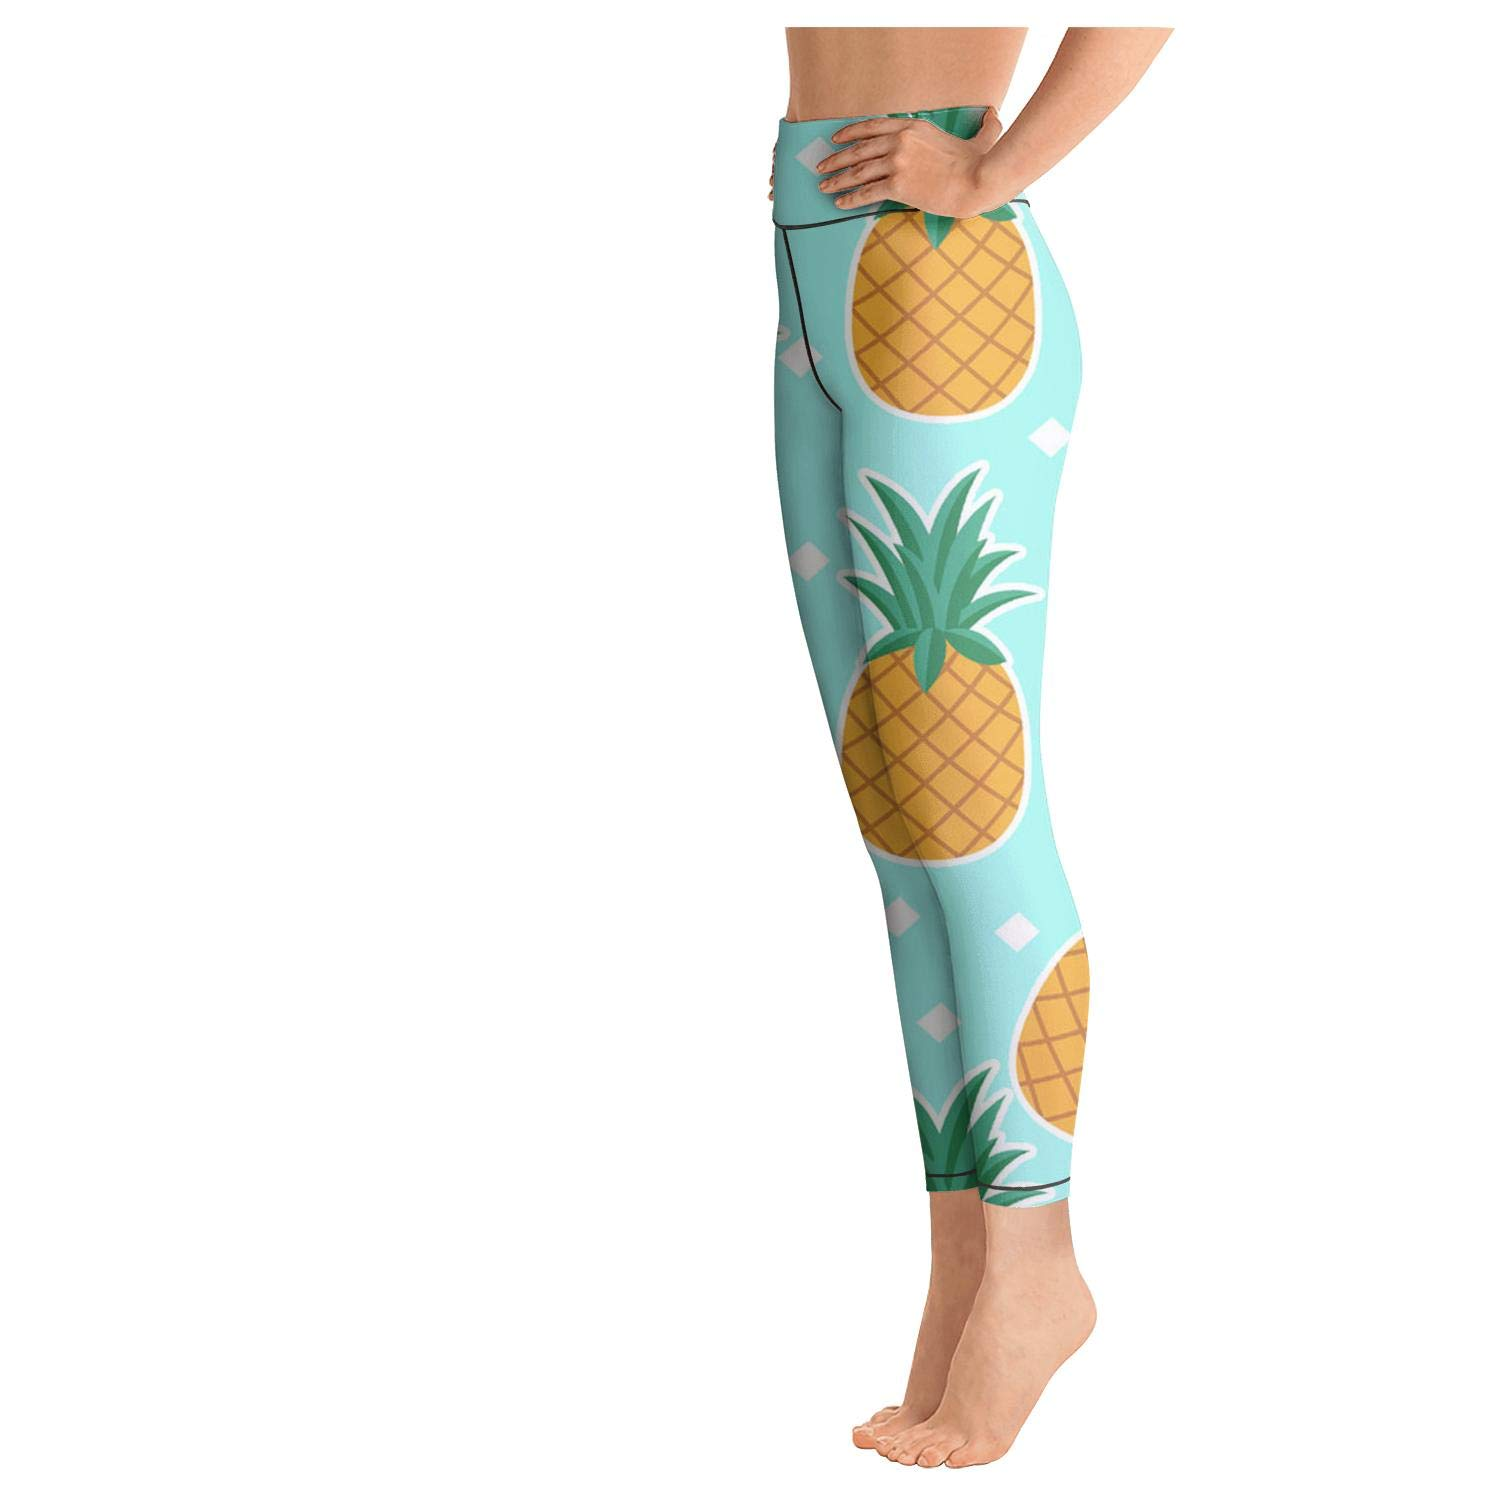 PROGIFToO Womens Workout Running Legging Pineapple Fruit Repeat Tummy Control Yoga Pants Essential